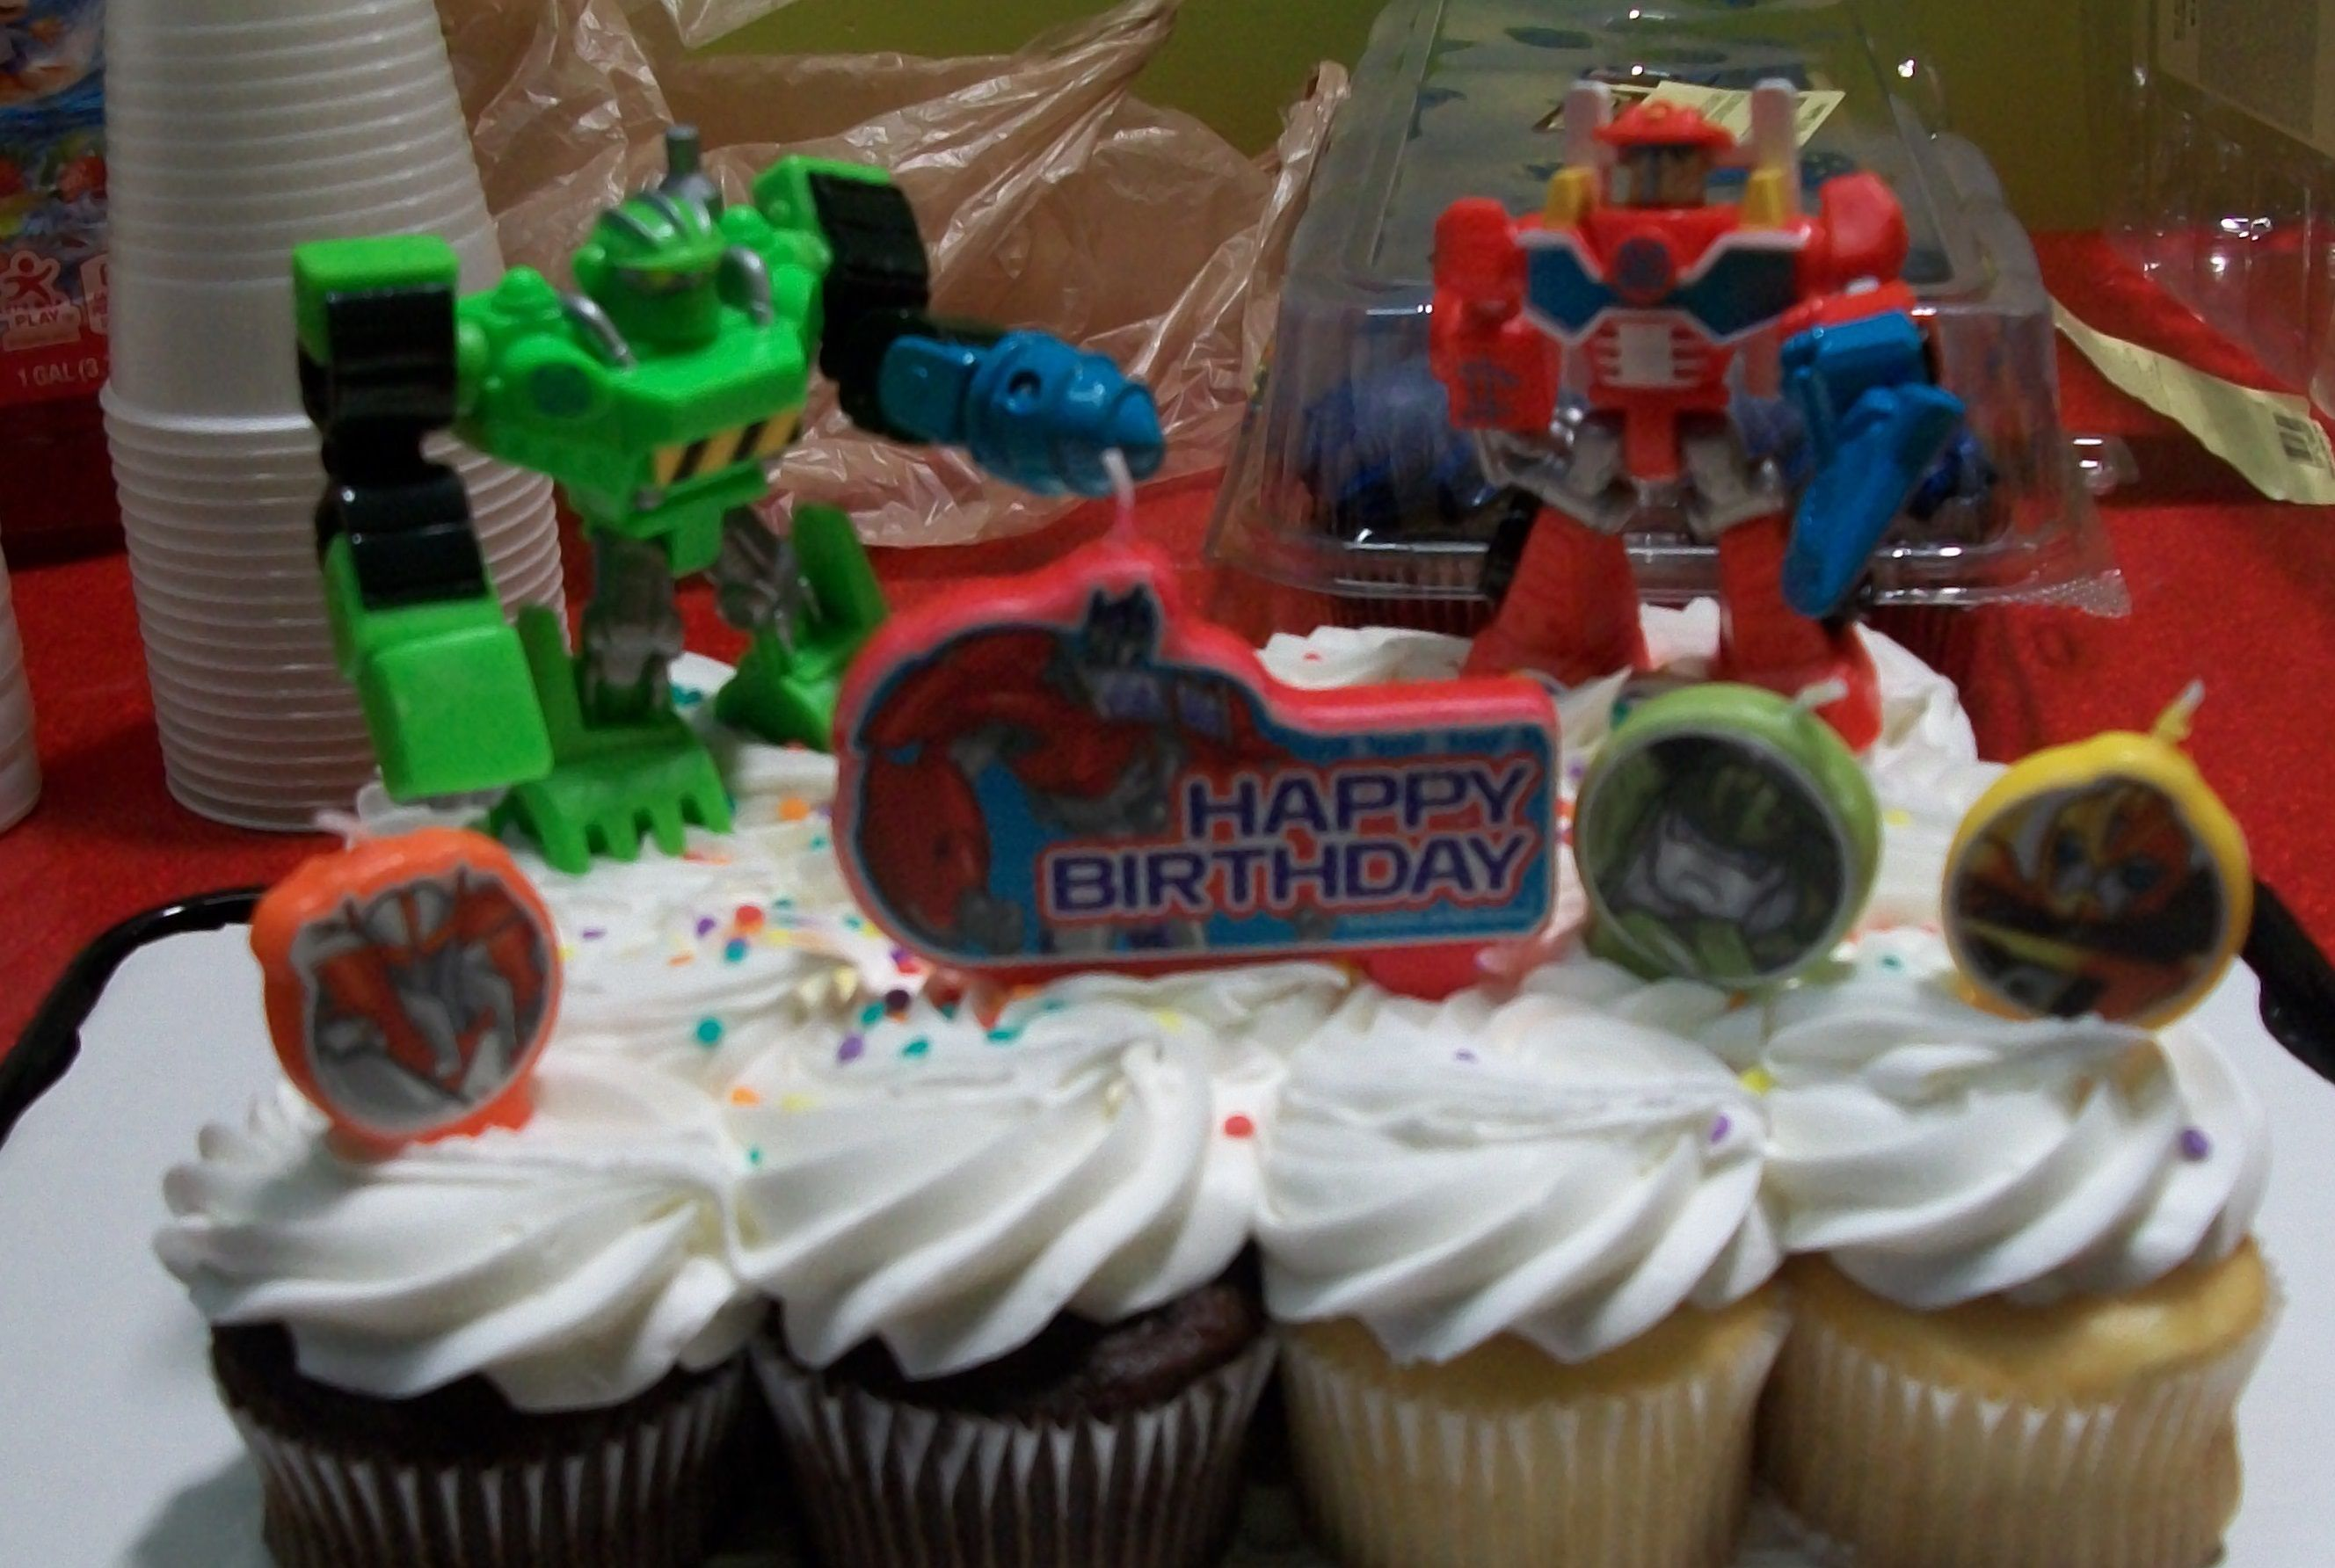 Tranformers Rescue Bots TransformersTM Prime Candles And Toys From Walgreens